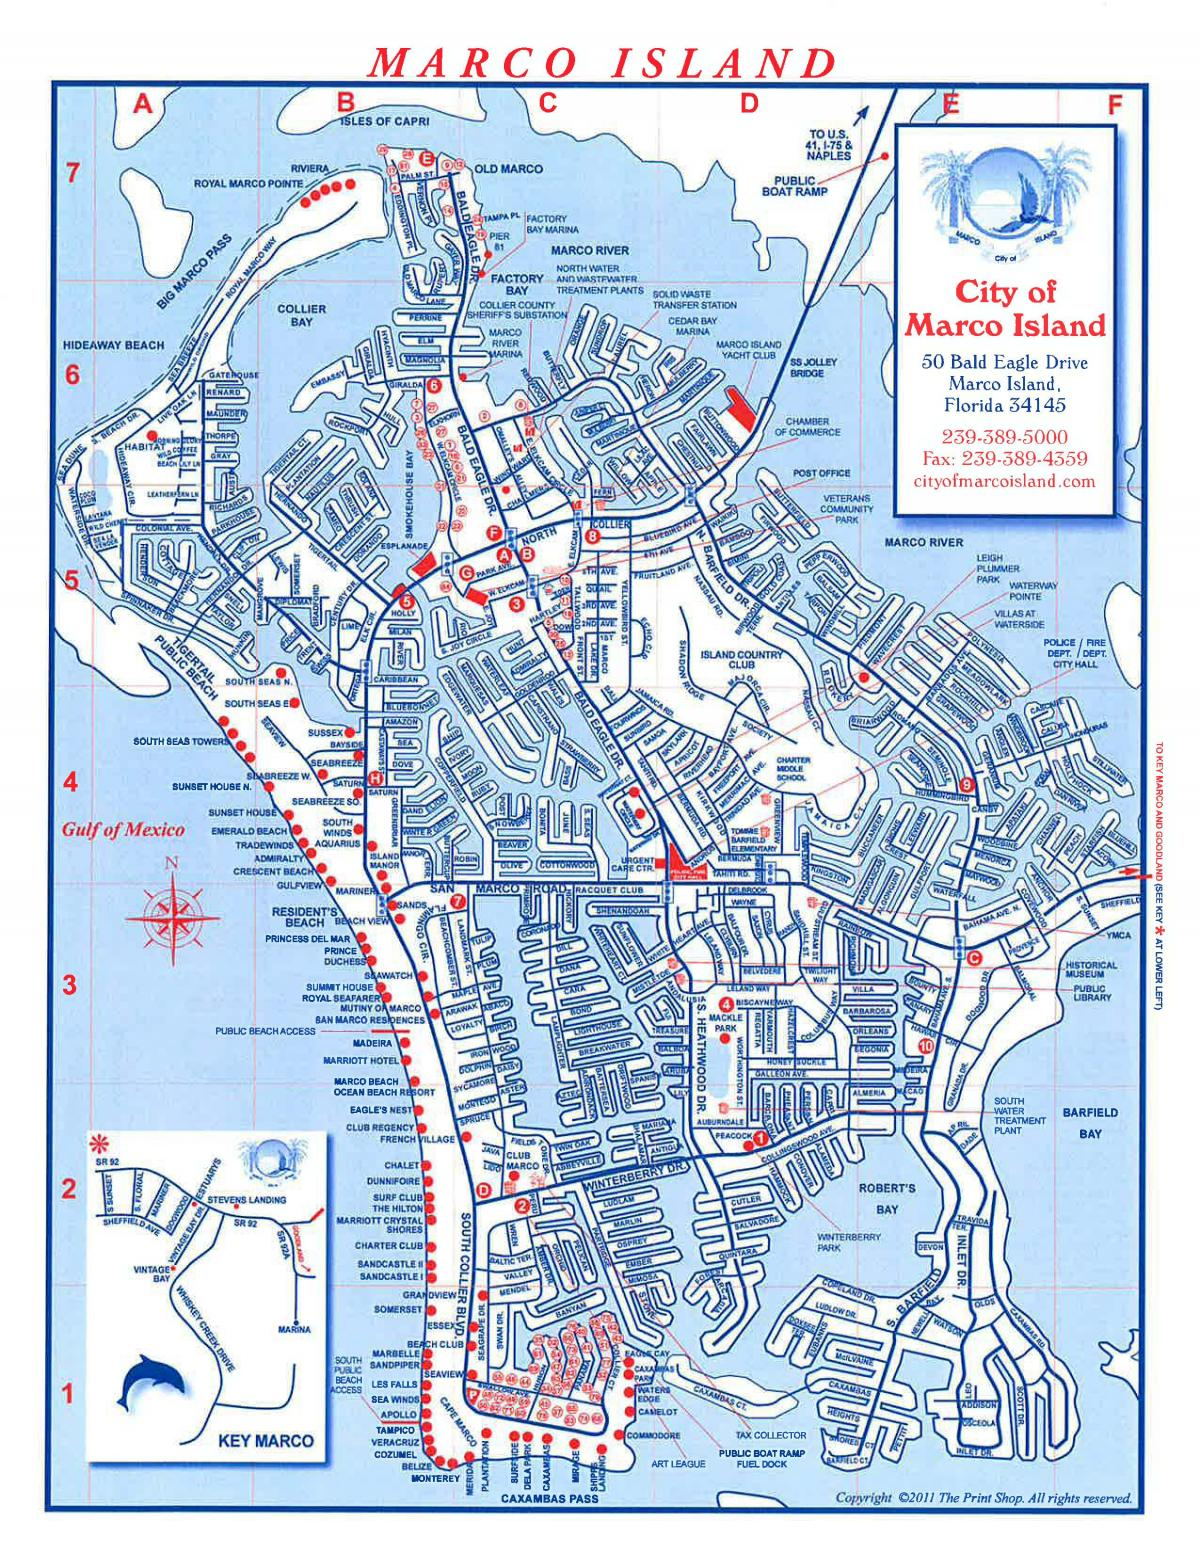 Where Is Marco Island Florida On The Map City of Marco Island MAP | City of Marco Island Florida